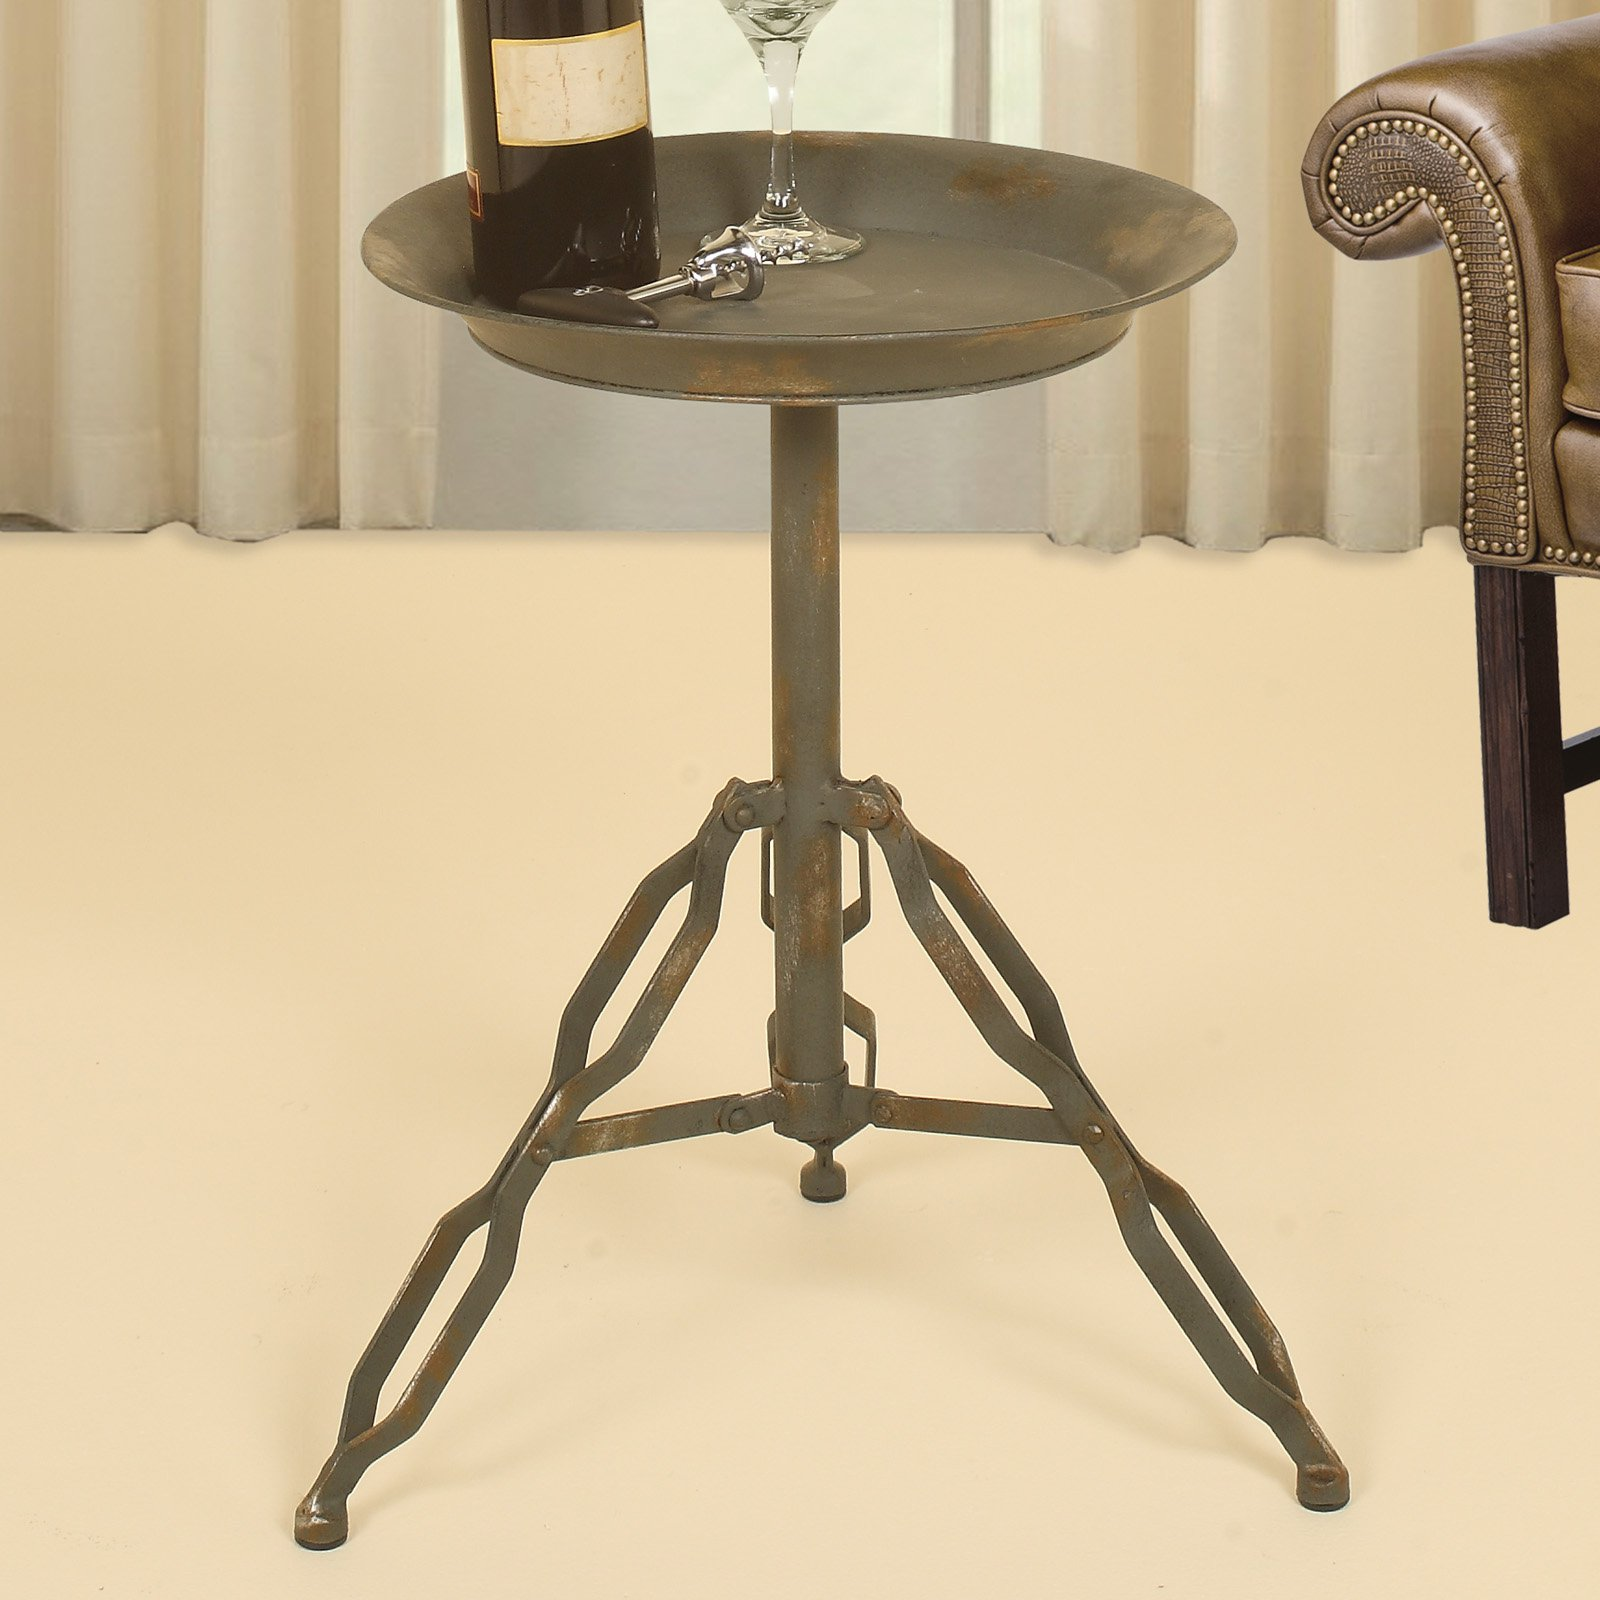 style industrial accent table vintage luxury life farm tures with wine rack underneath couch ikea small gray coffee acrylic side tables living room inch round plastic tablecloths